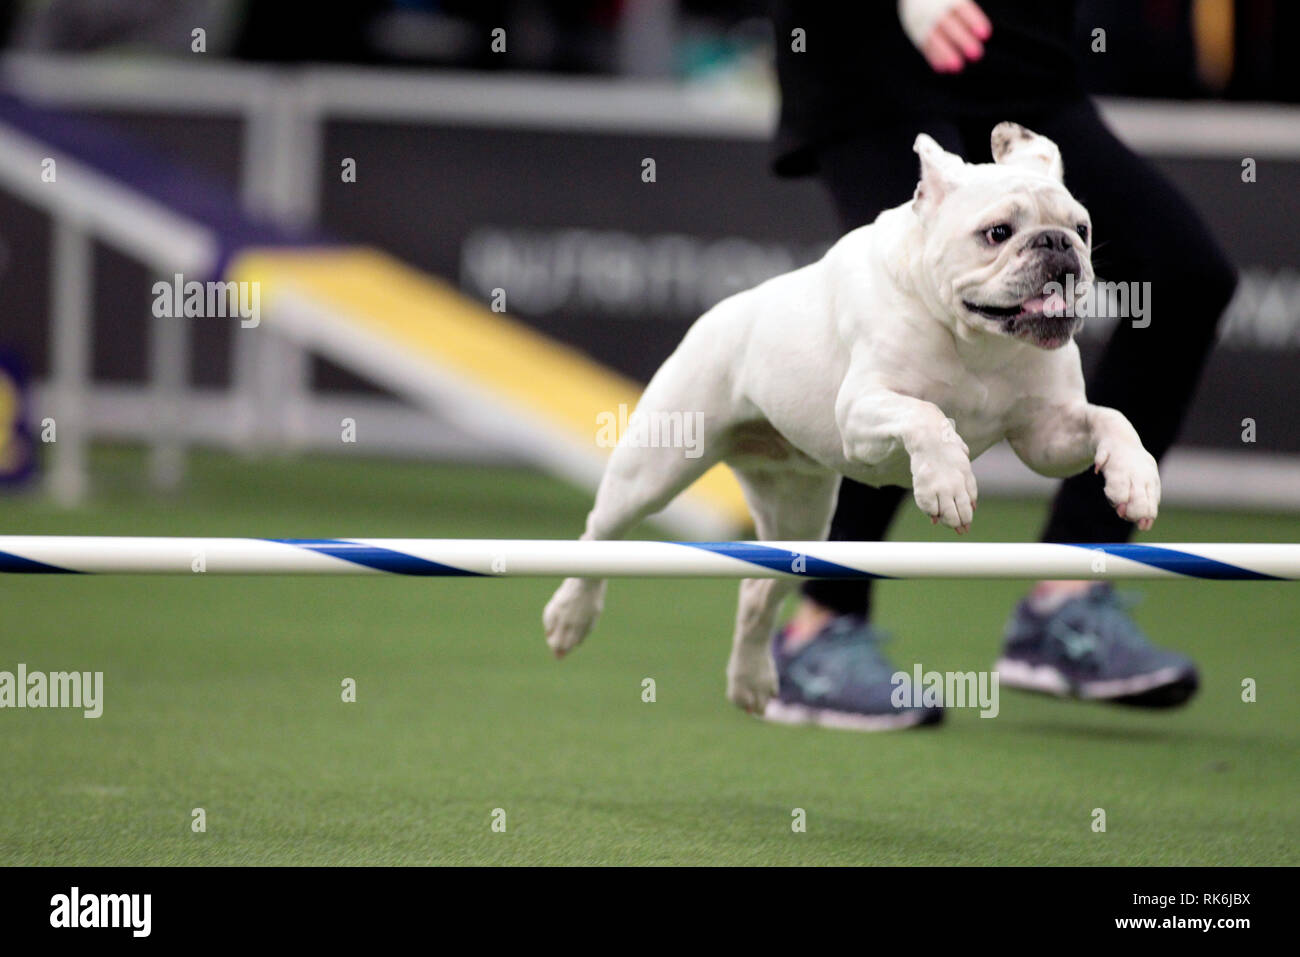 New York, USA. 9th Feb 2019. Rudy, a Bulldog, competing in the preliminaries of the Westminster Kennel Club's Master's Agility Championship. Credit: Adam Stoltman/Alamy Live News Stock Photo